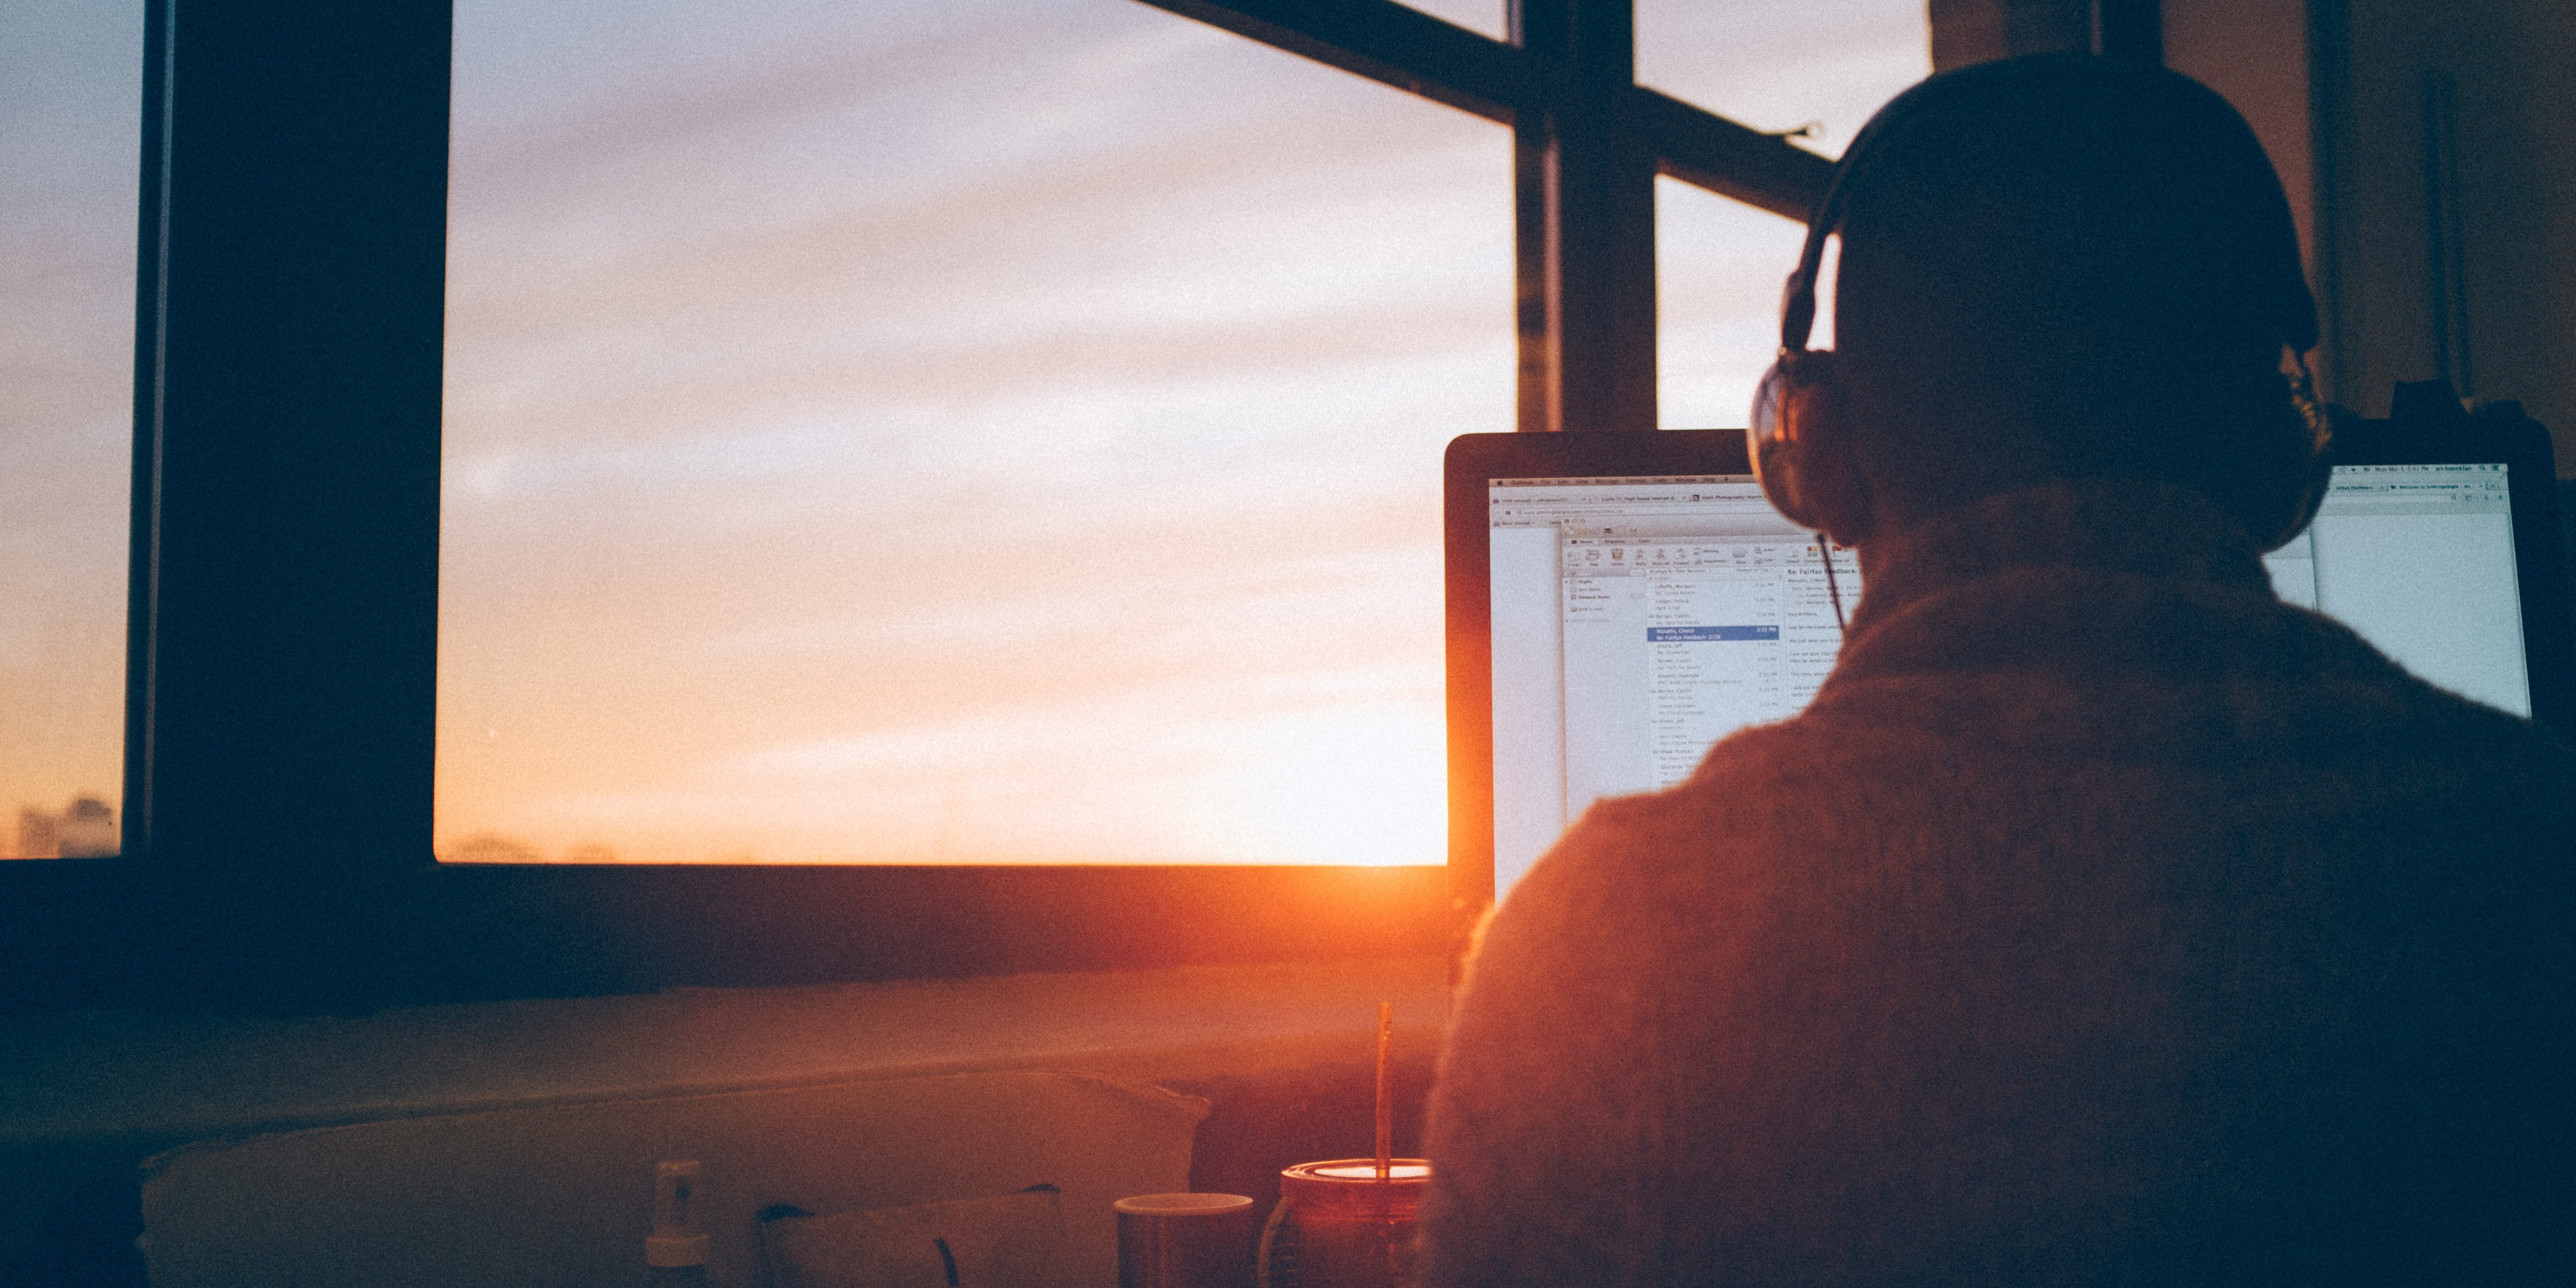 Man wearing headphones and looking at computer screen while sun sets